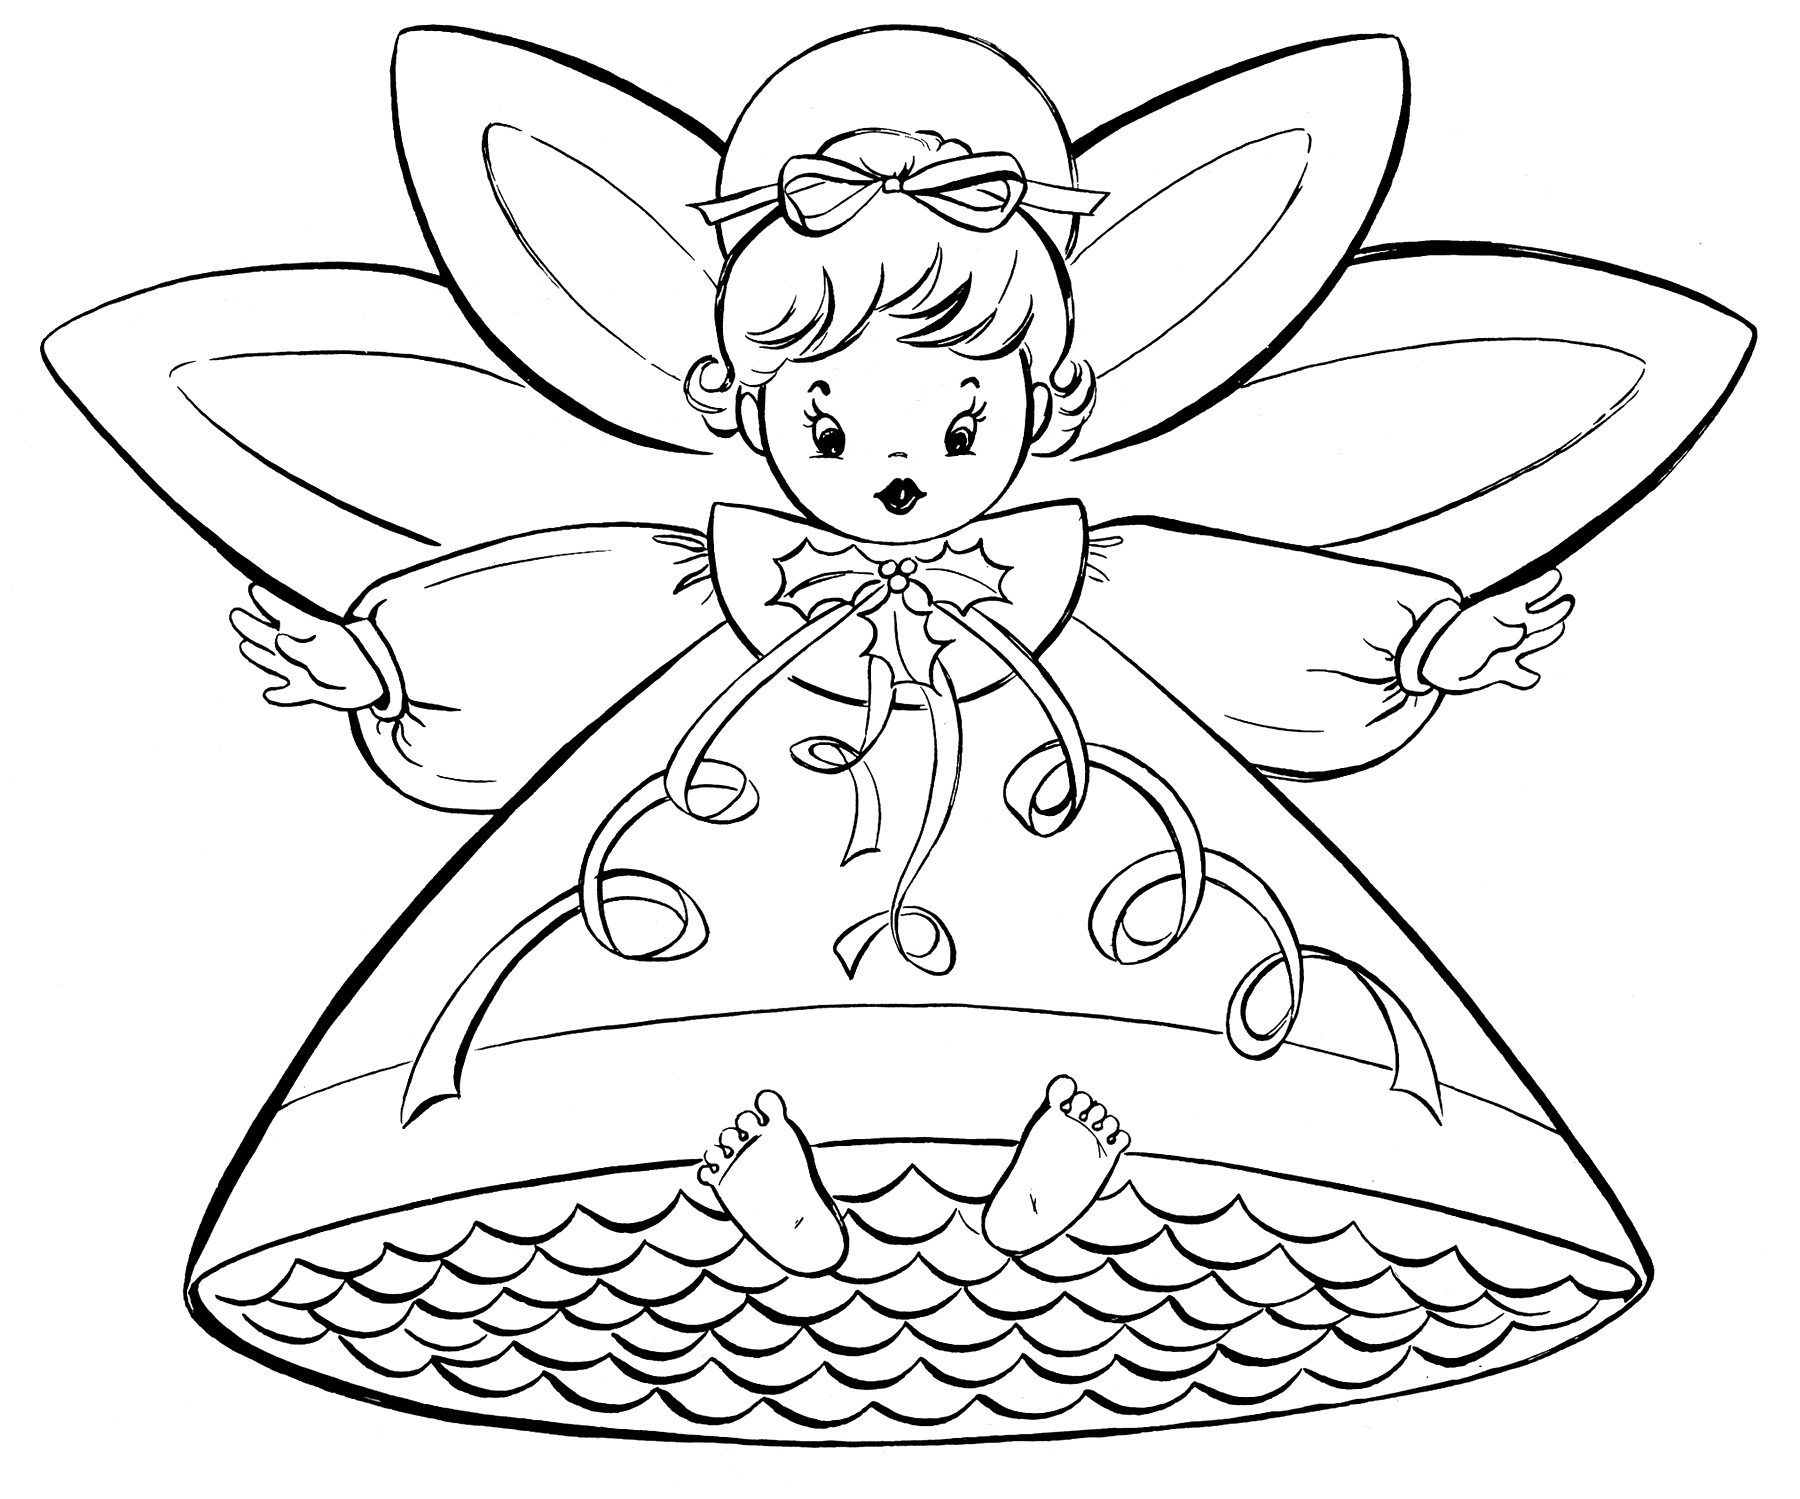 Christmas Coloring Pages To Print Free Free Christmas Coloring Pages Retro Angels The Graphics Fairy